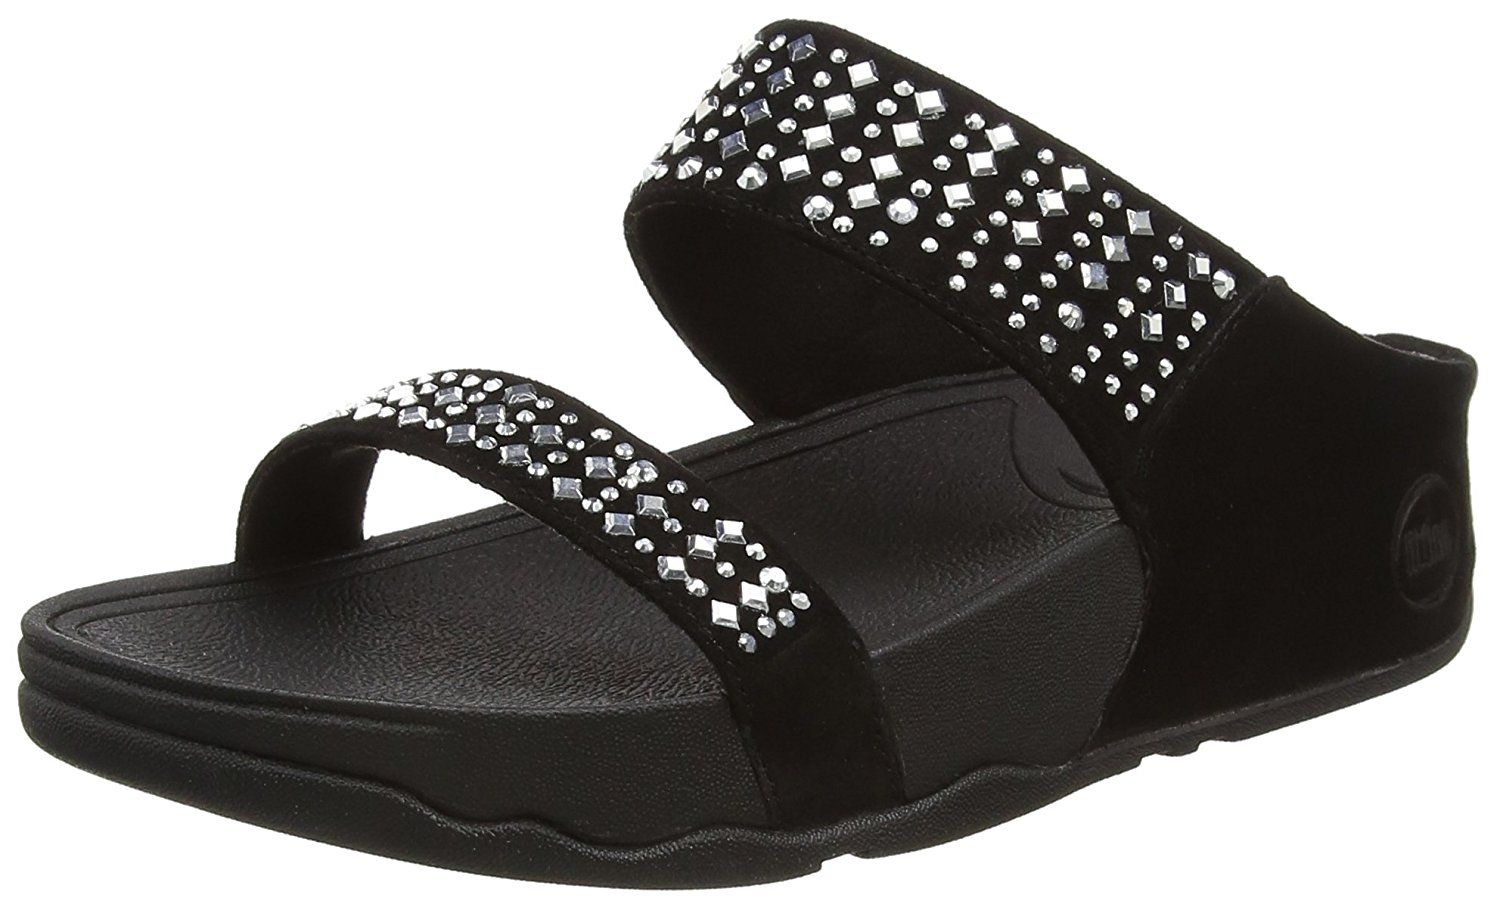 289406feae830 FitFlop Women's Novy Slide Sandal *** Remarkable product available ...